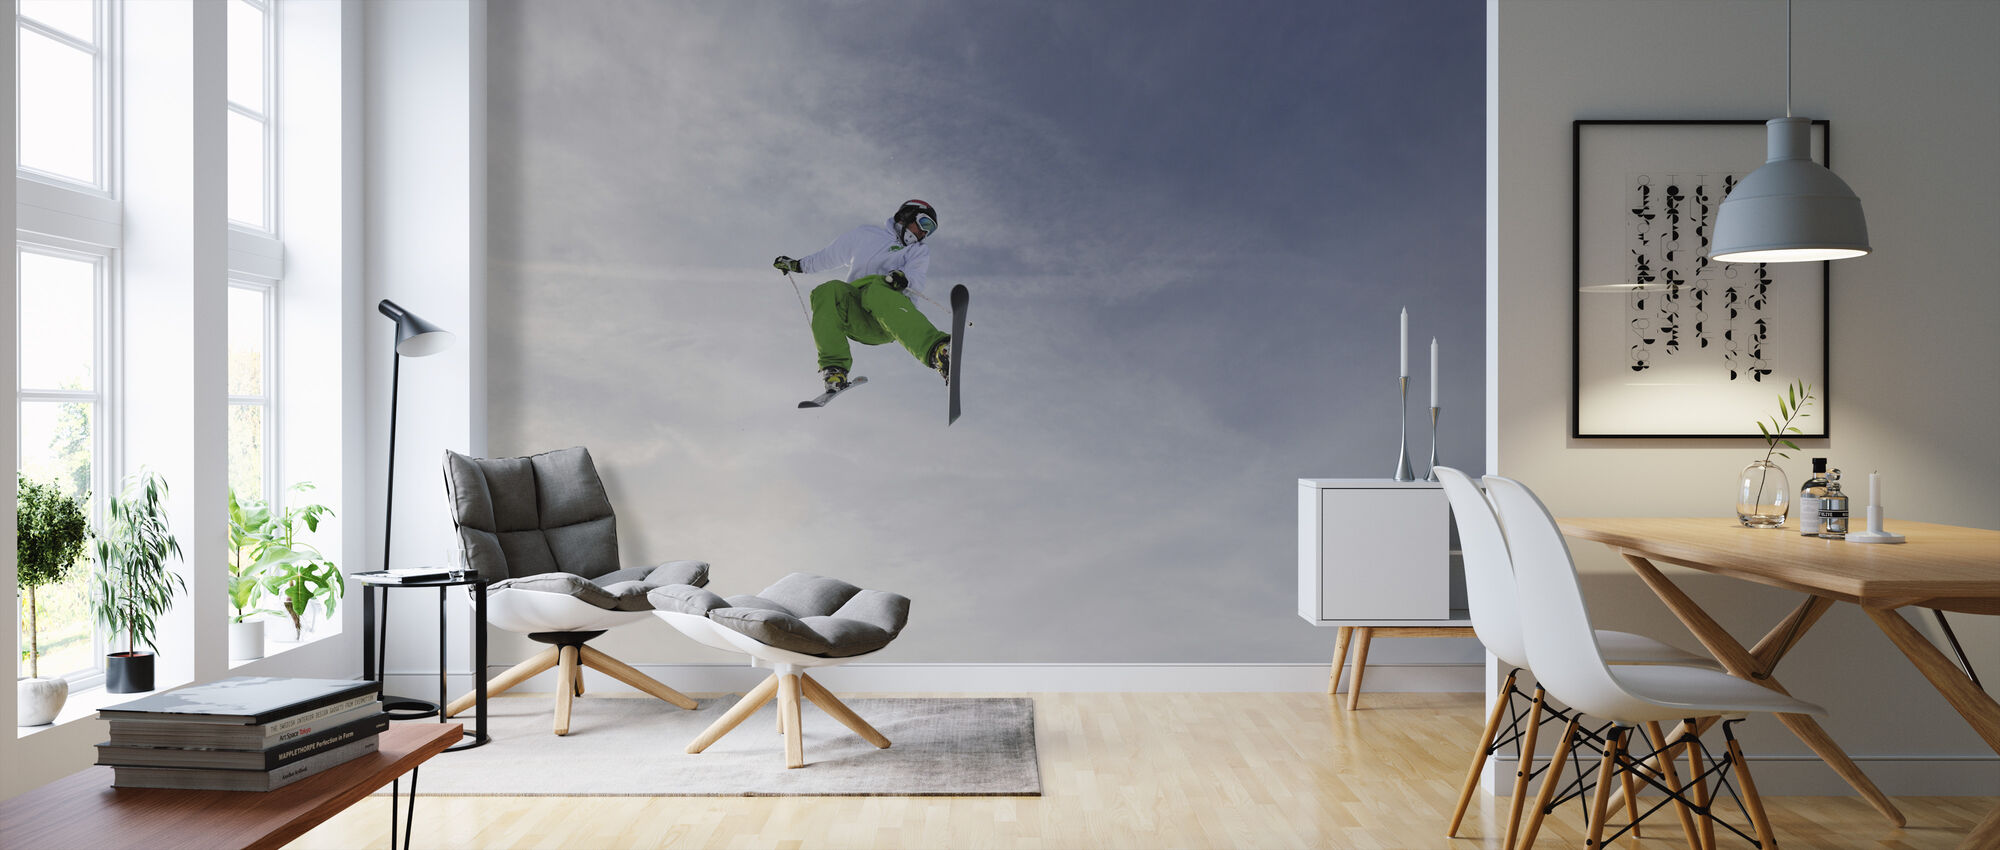 Freestyle Skiing - Wallpaper - Living Room